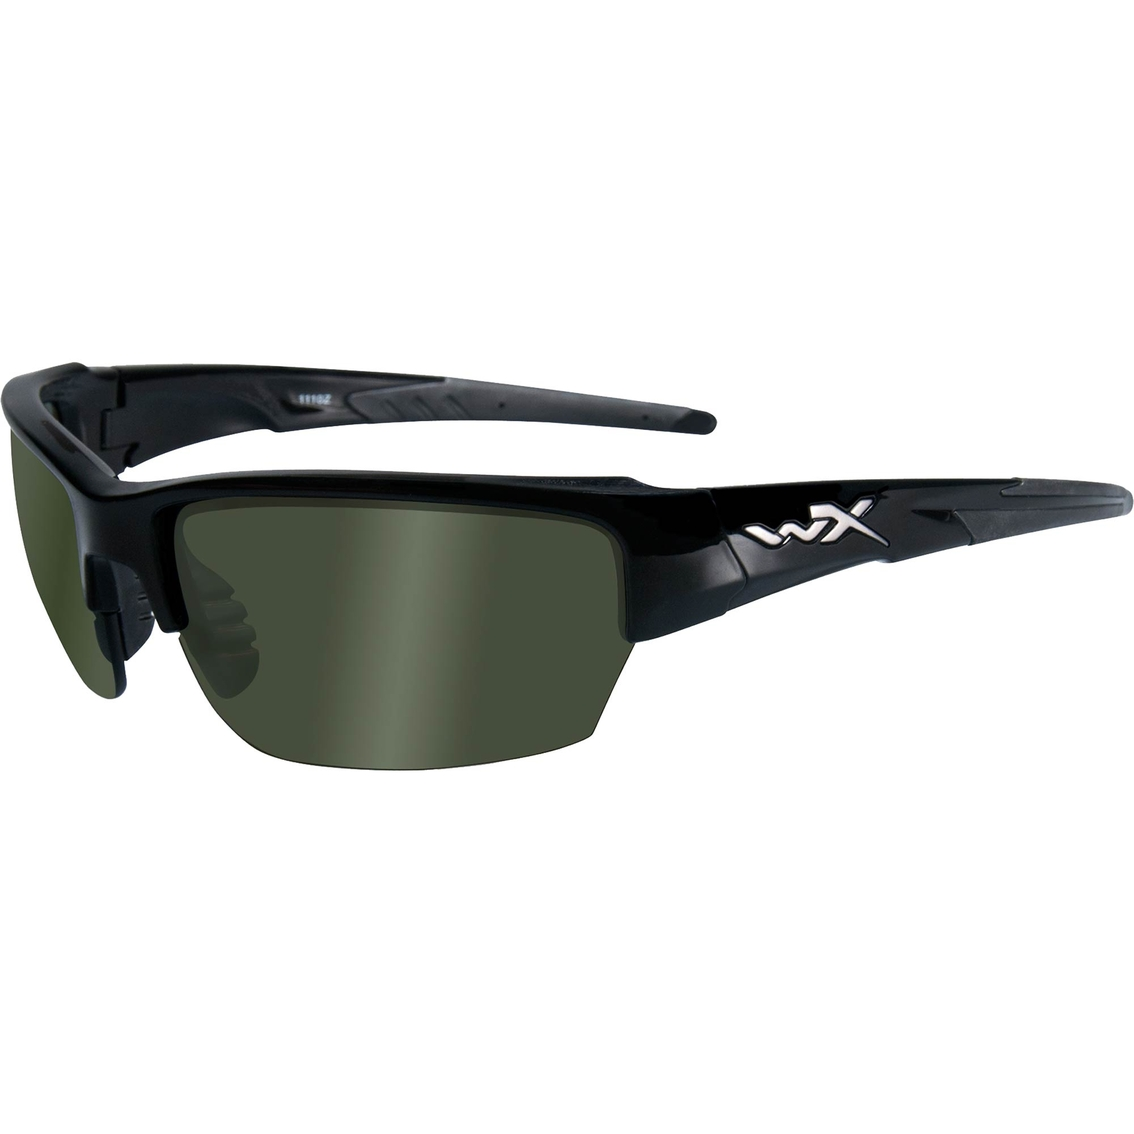 Authorized Sunglasses Army  wiley x wx saint changeable sunglasses men s sunglasses